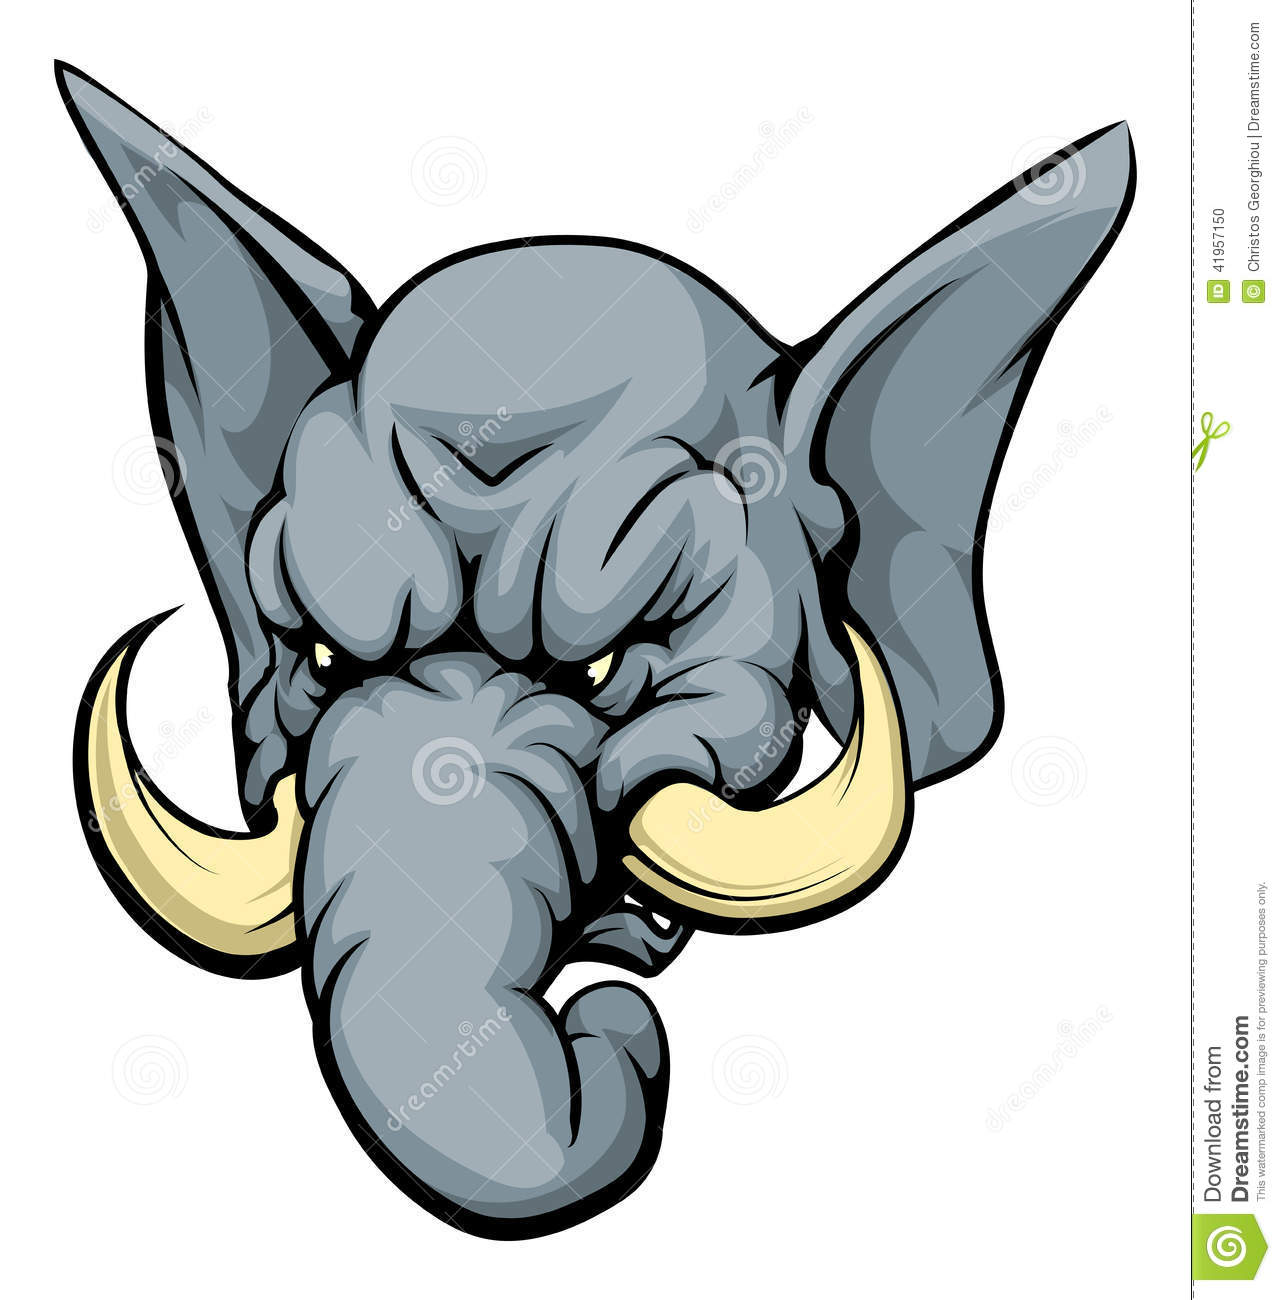 Elephant Mascot Character Stock Vector - Image: 41957150 Raccoon Face Clip Art